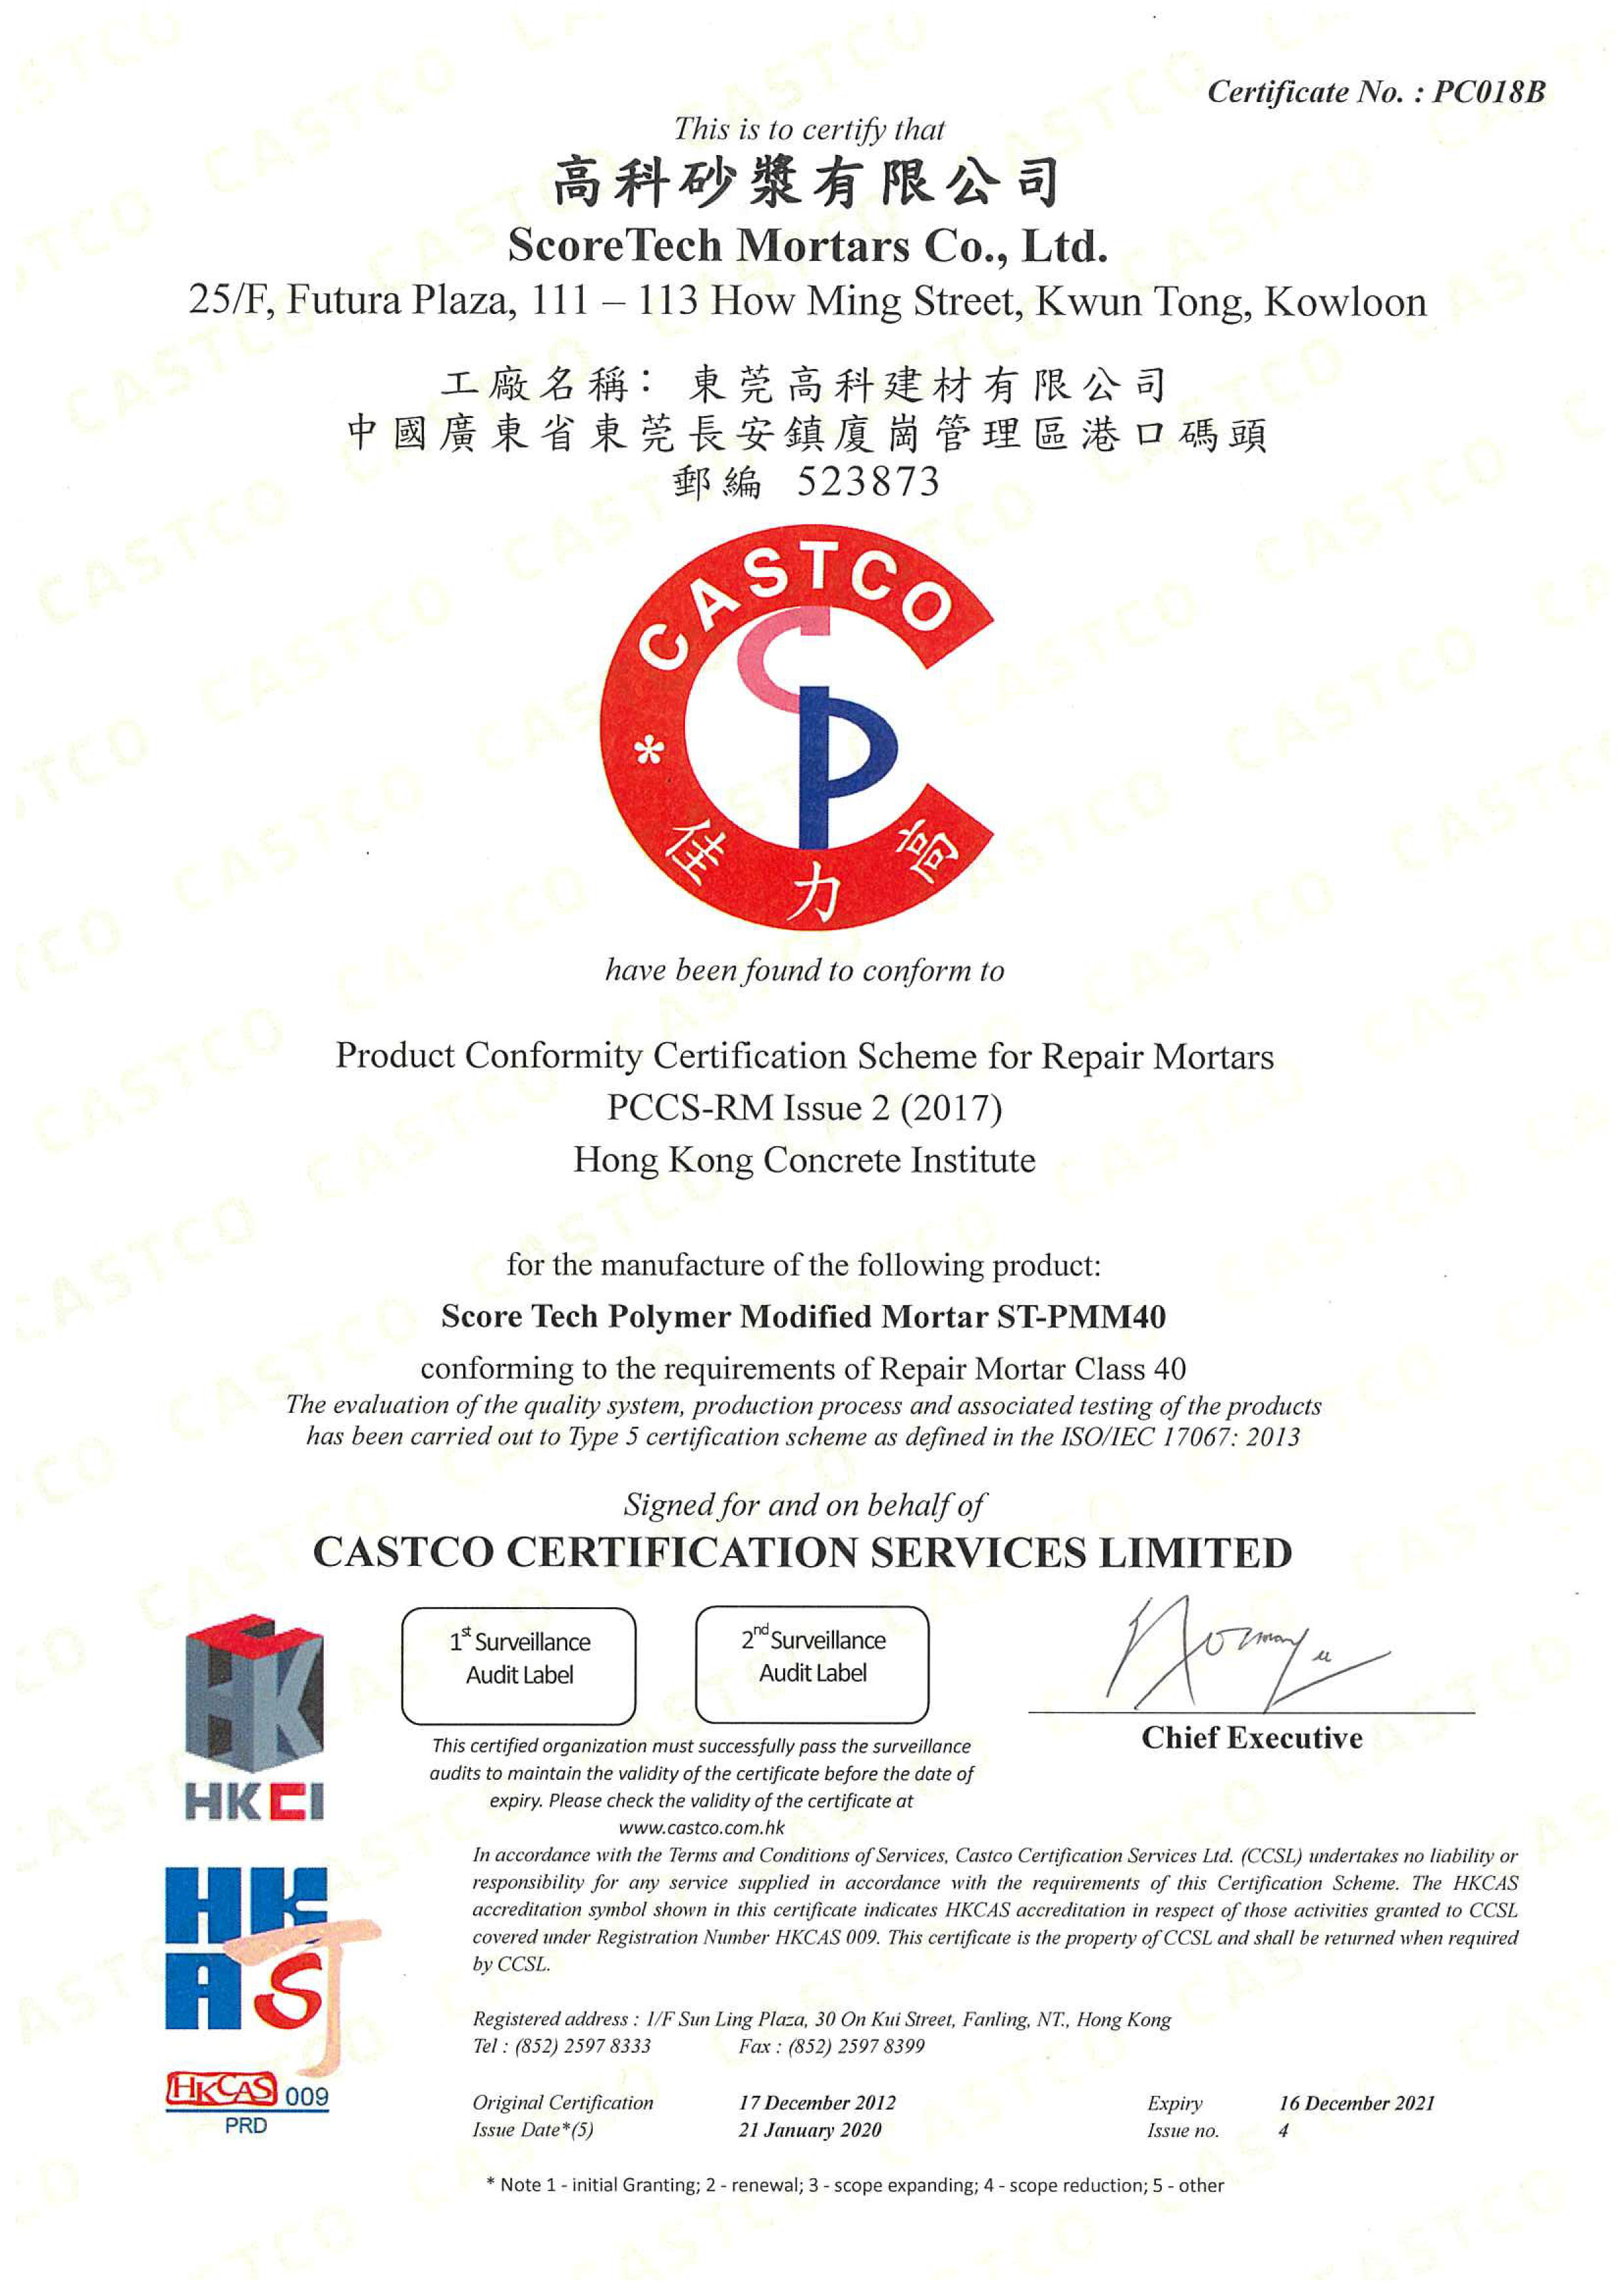 ST-PMM(40) Product Certificate-001